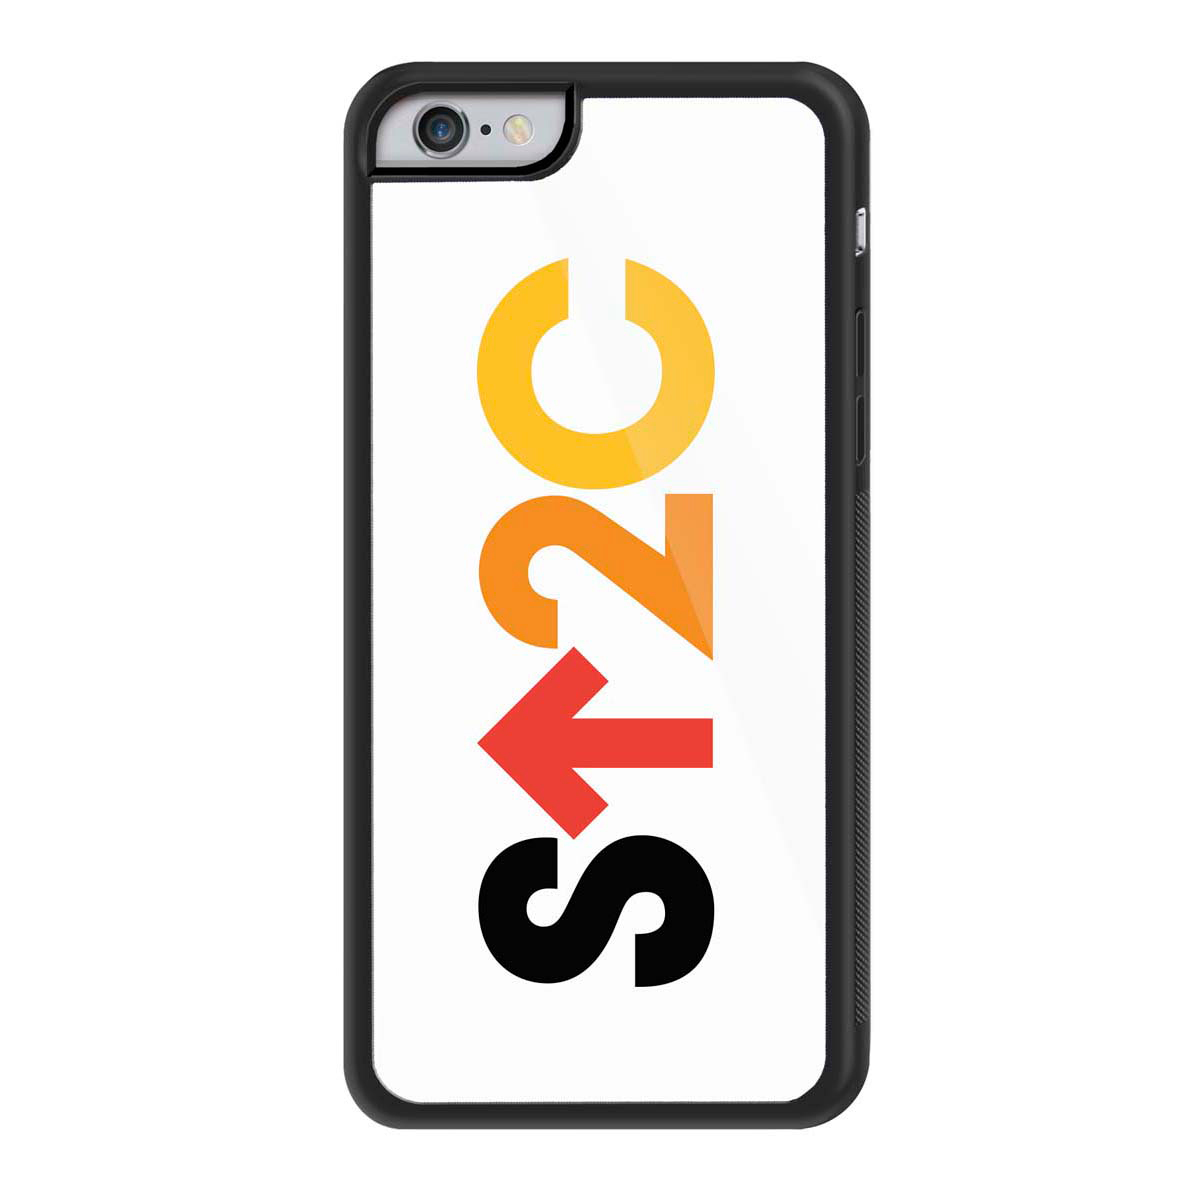 SU2C iPhone 6 cover, Short Logo White Background